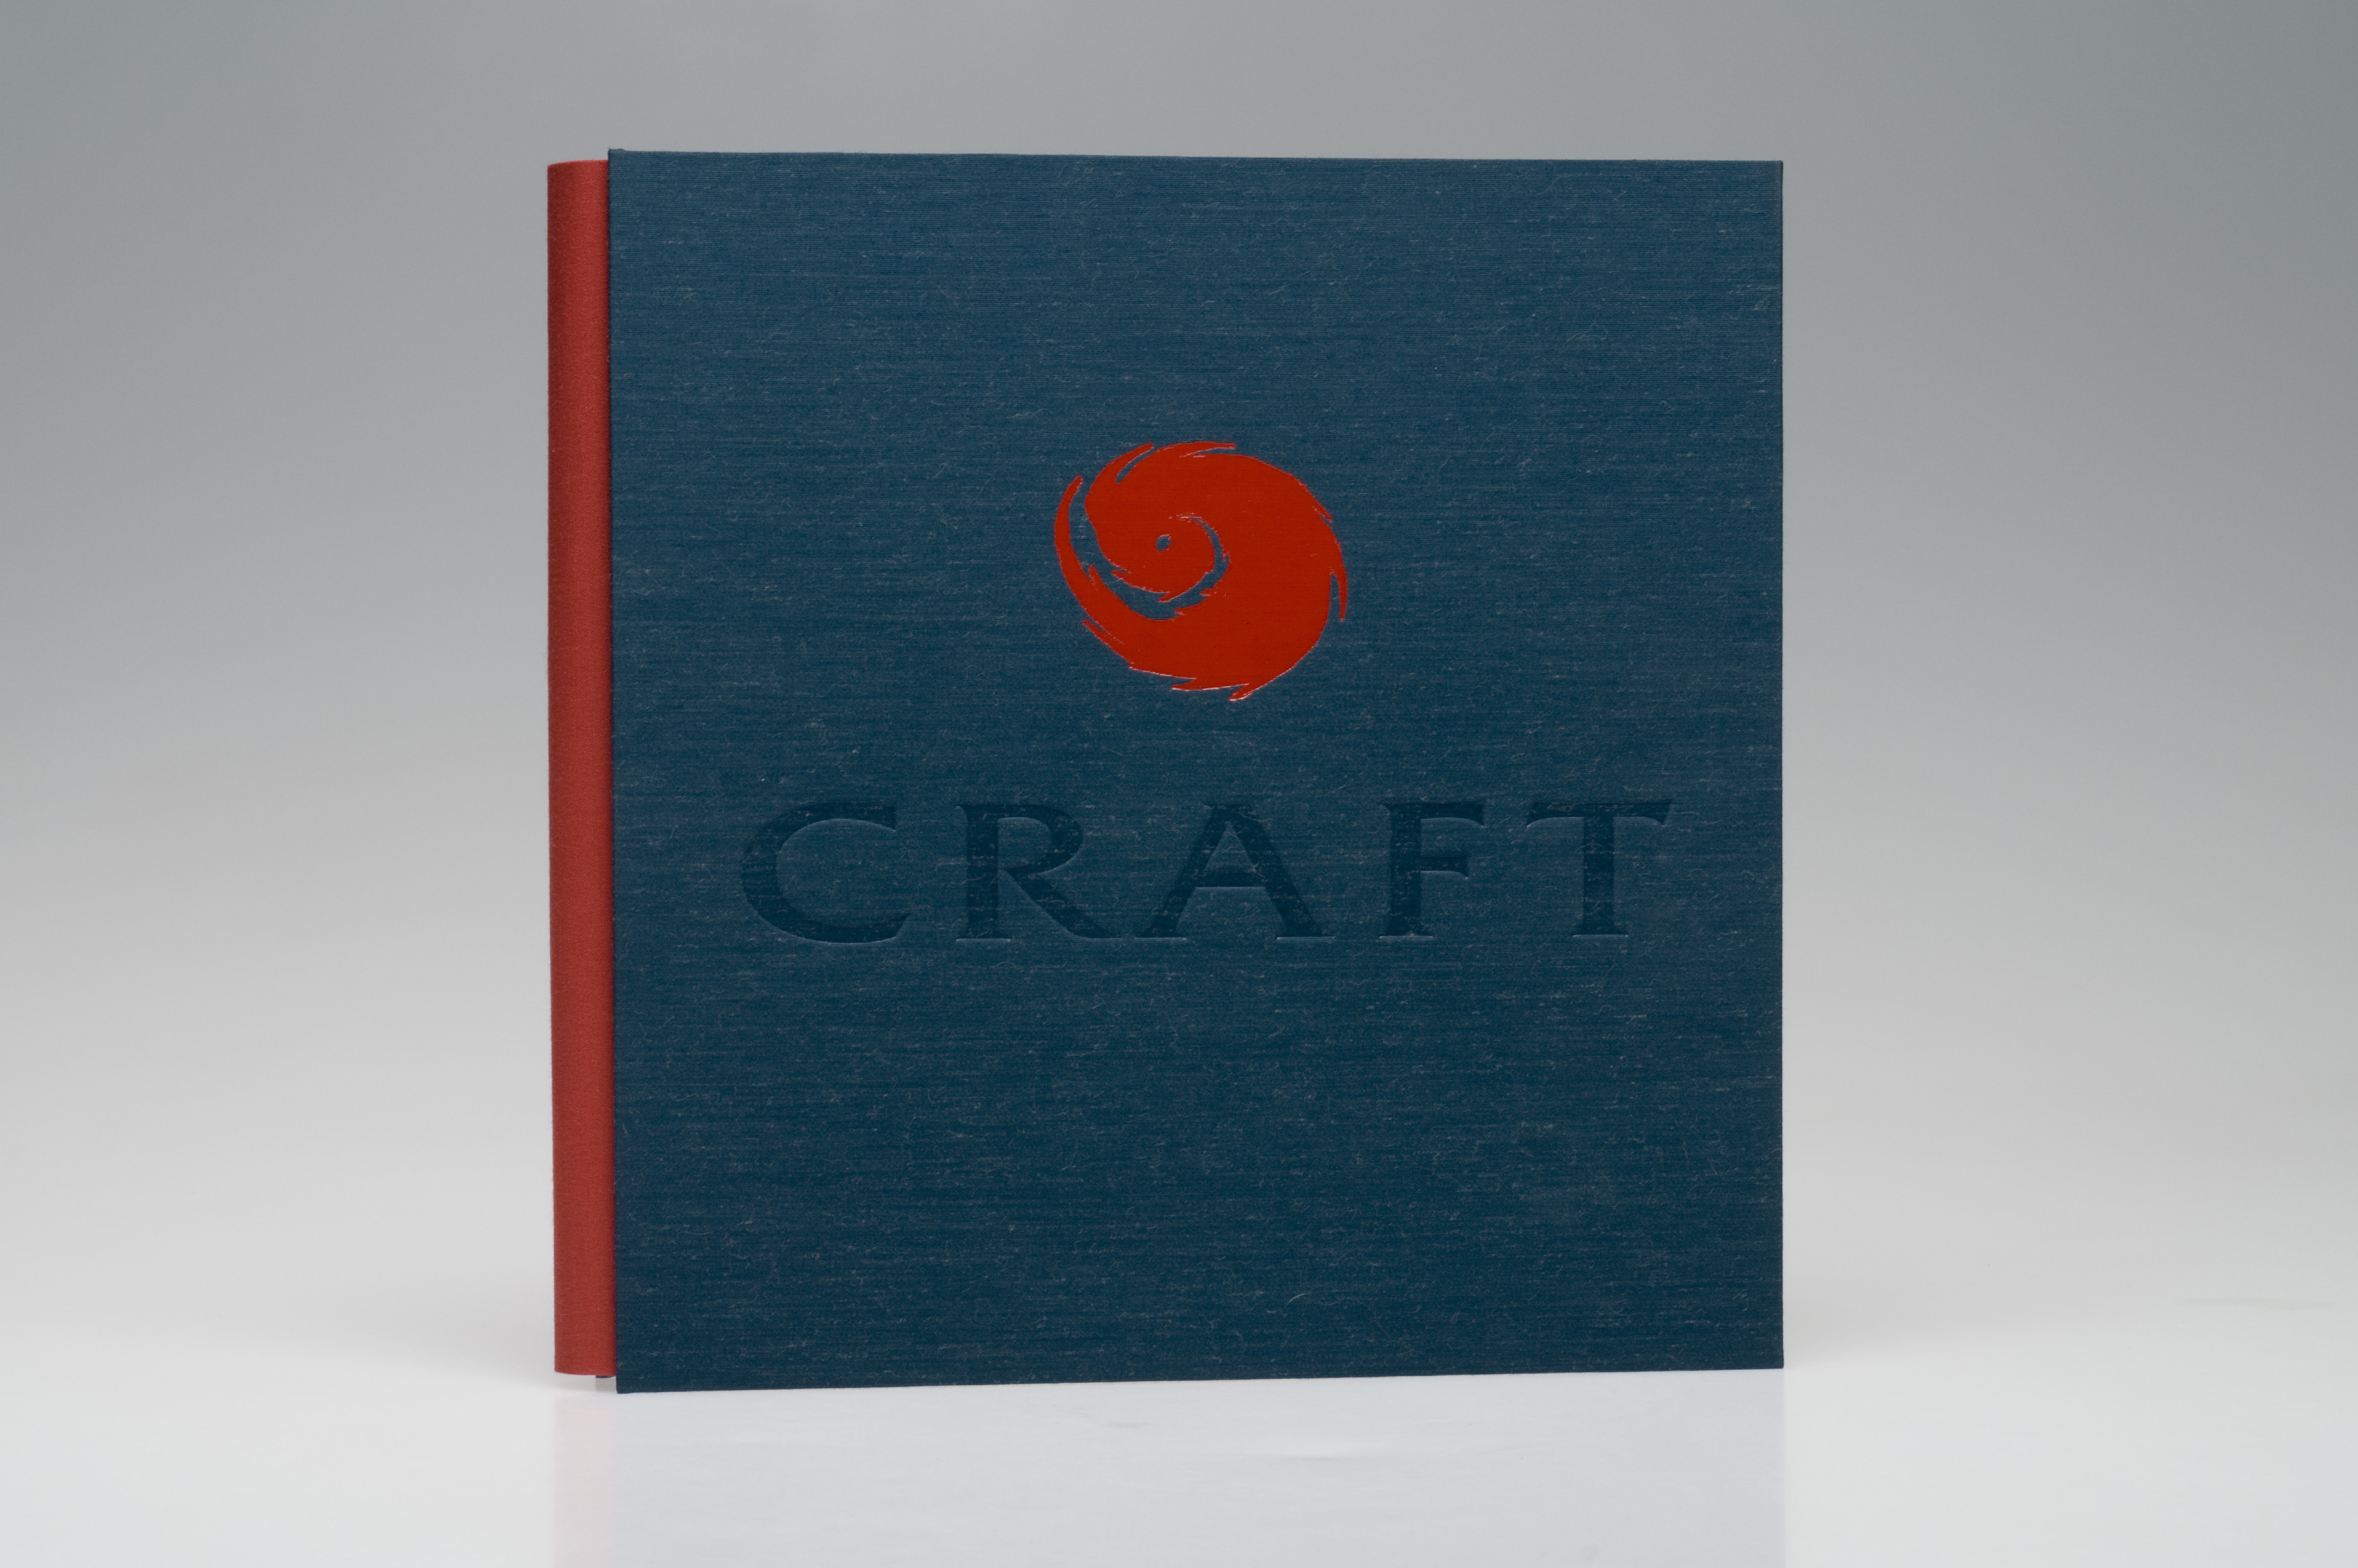 https://0201.nccdn.net/1_2/000/000/098/8cd/Dunne-Craft-cover-3676x2445.jpg